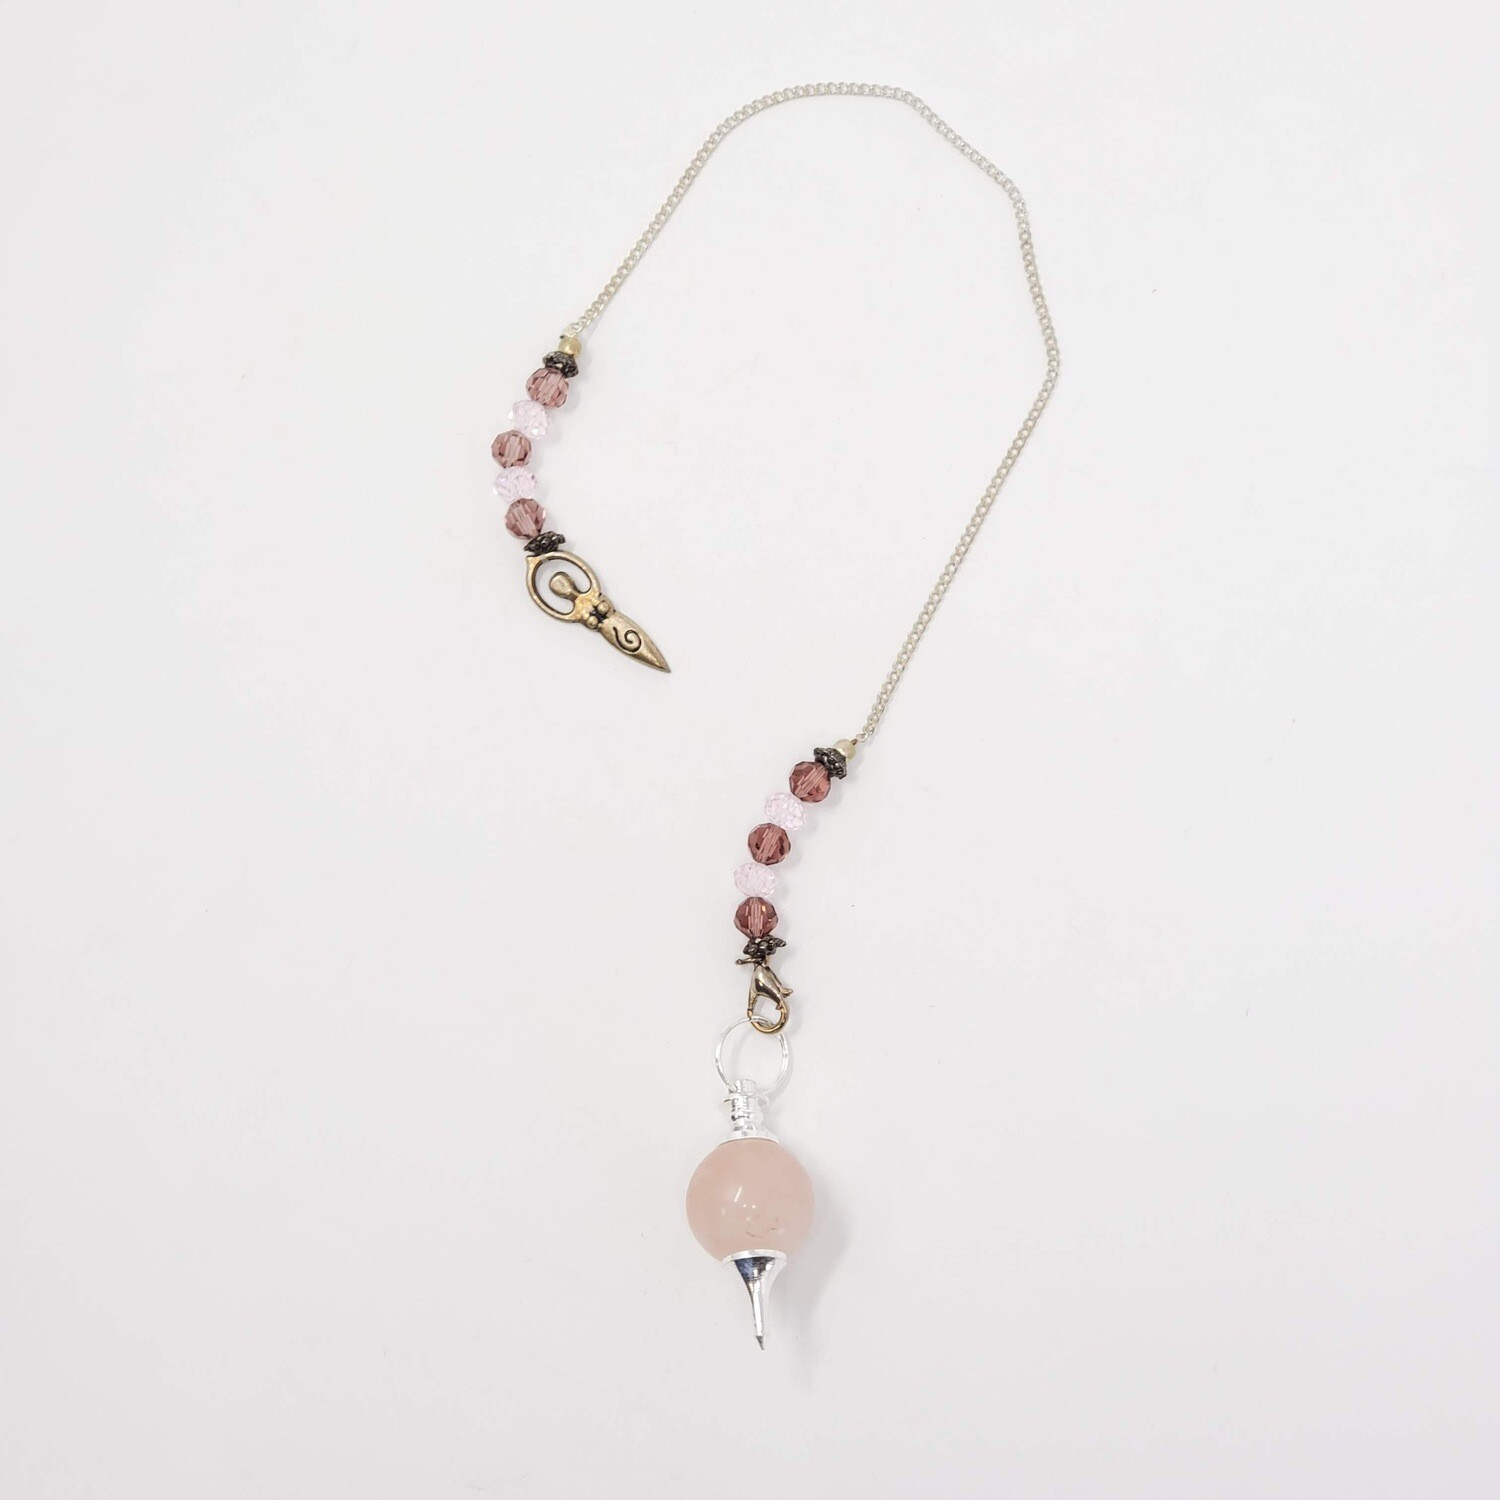 ROSE QUARTZ GODDESS PENDULUM